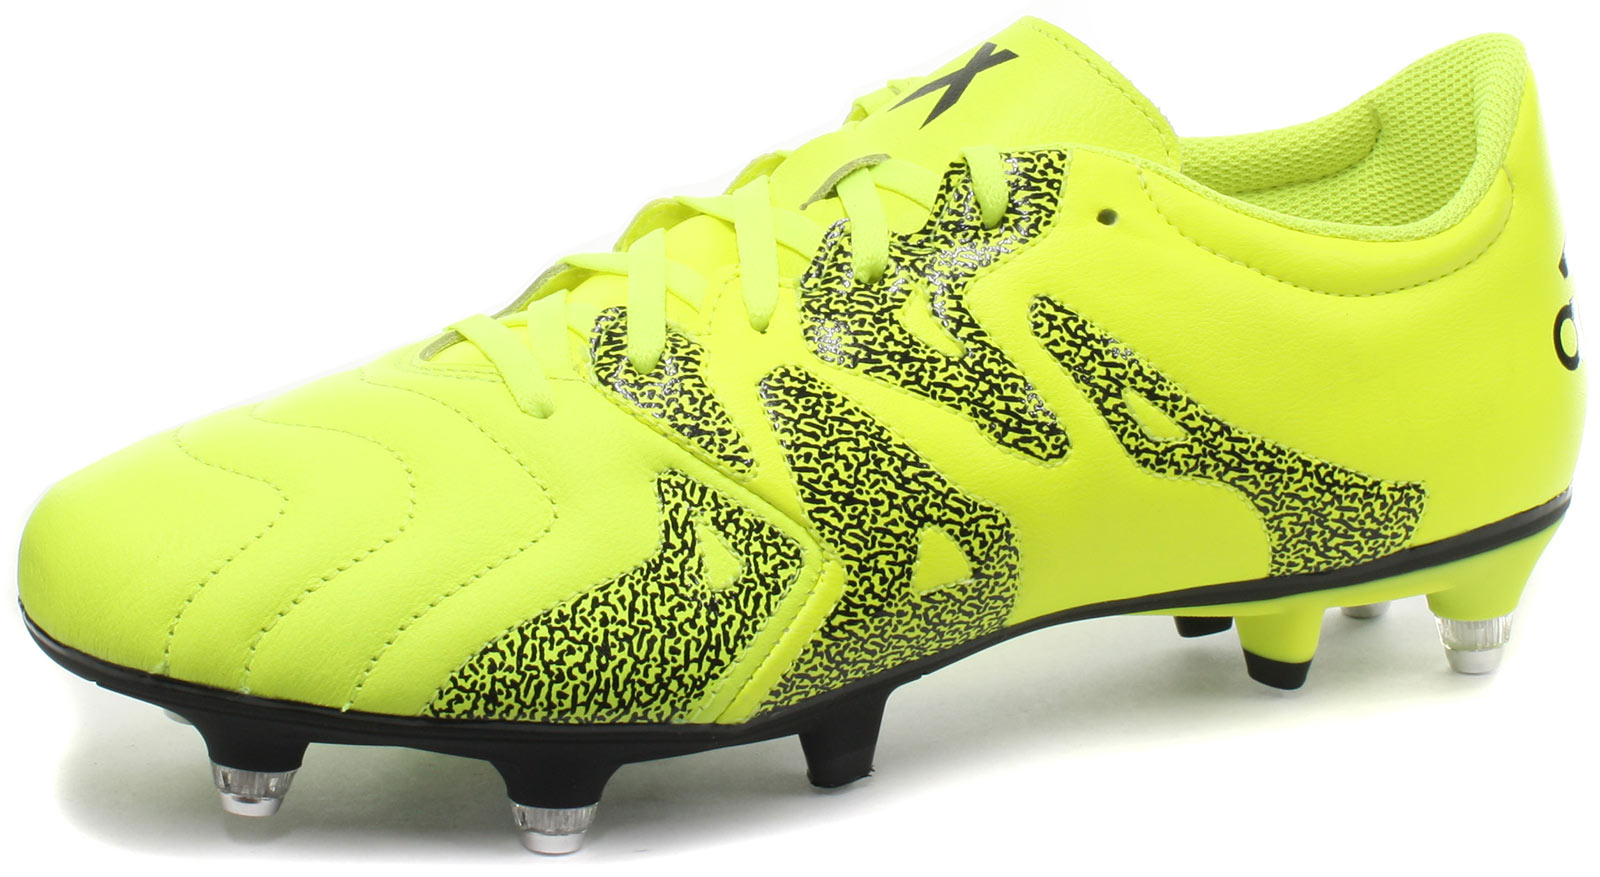 New adidas X 15.3 SG Leather Mens Football Boots   Soccer Cleats ALL ... 2a2450c29f73